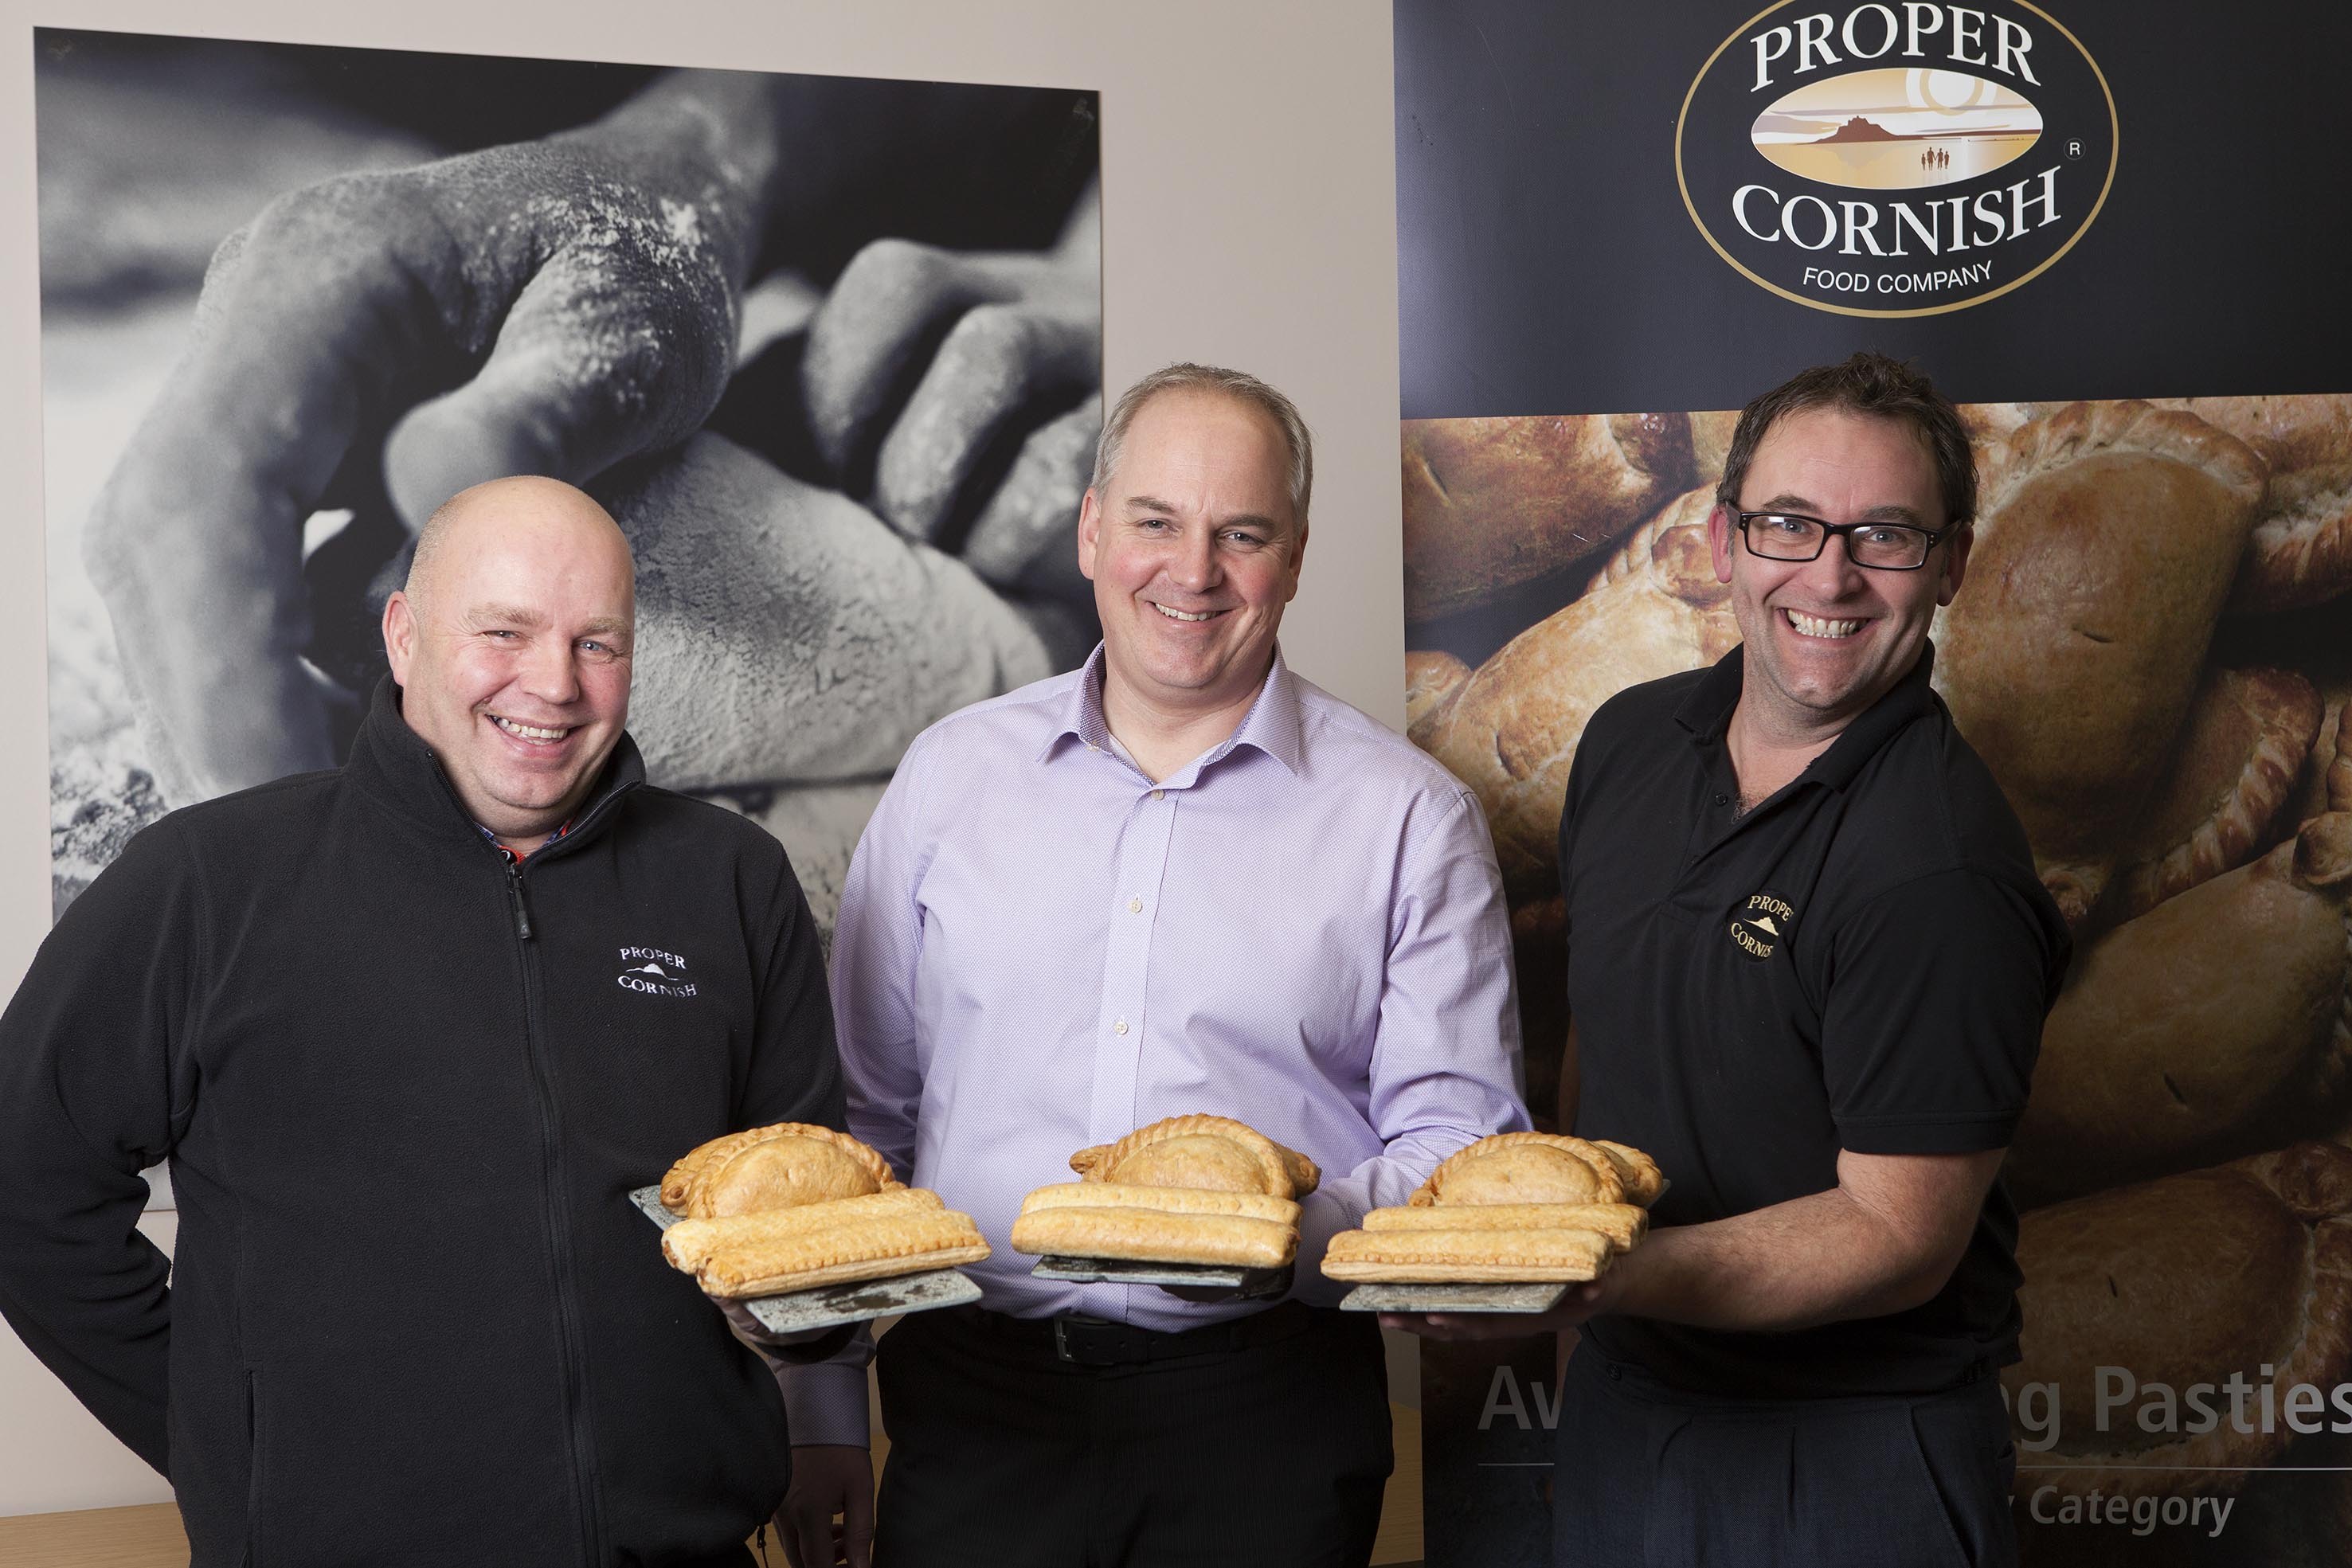 L-R: Production manager, Kev Davis; MD Chris Pauling; new product development chef, Nick Stanyer